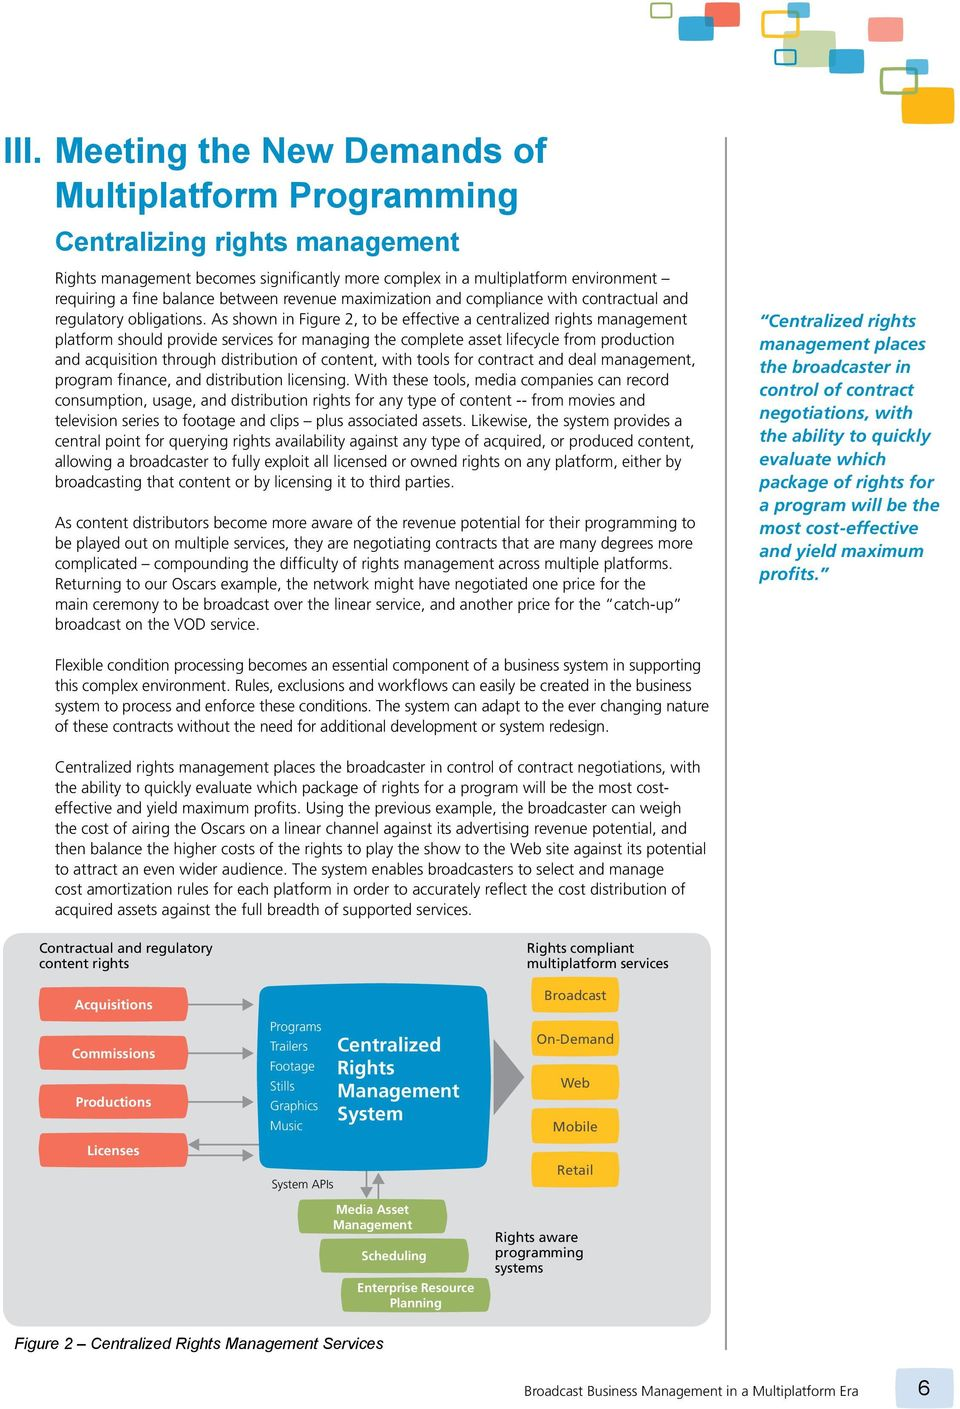 As shown in Figure 2, to be effective a centralized rights management platform should provide services for managing the complete asset lifecycle from production and acquisition through distribution